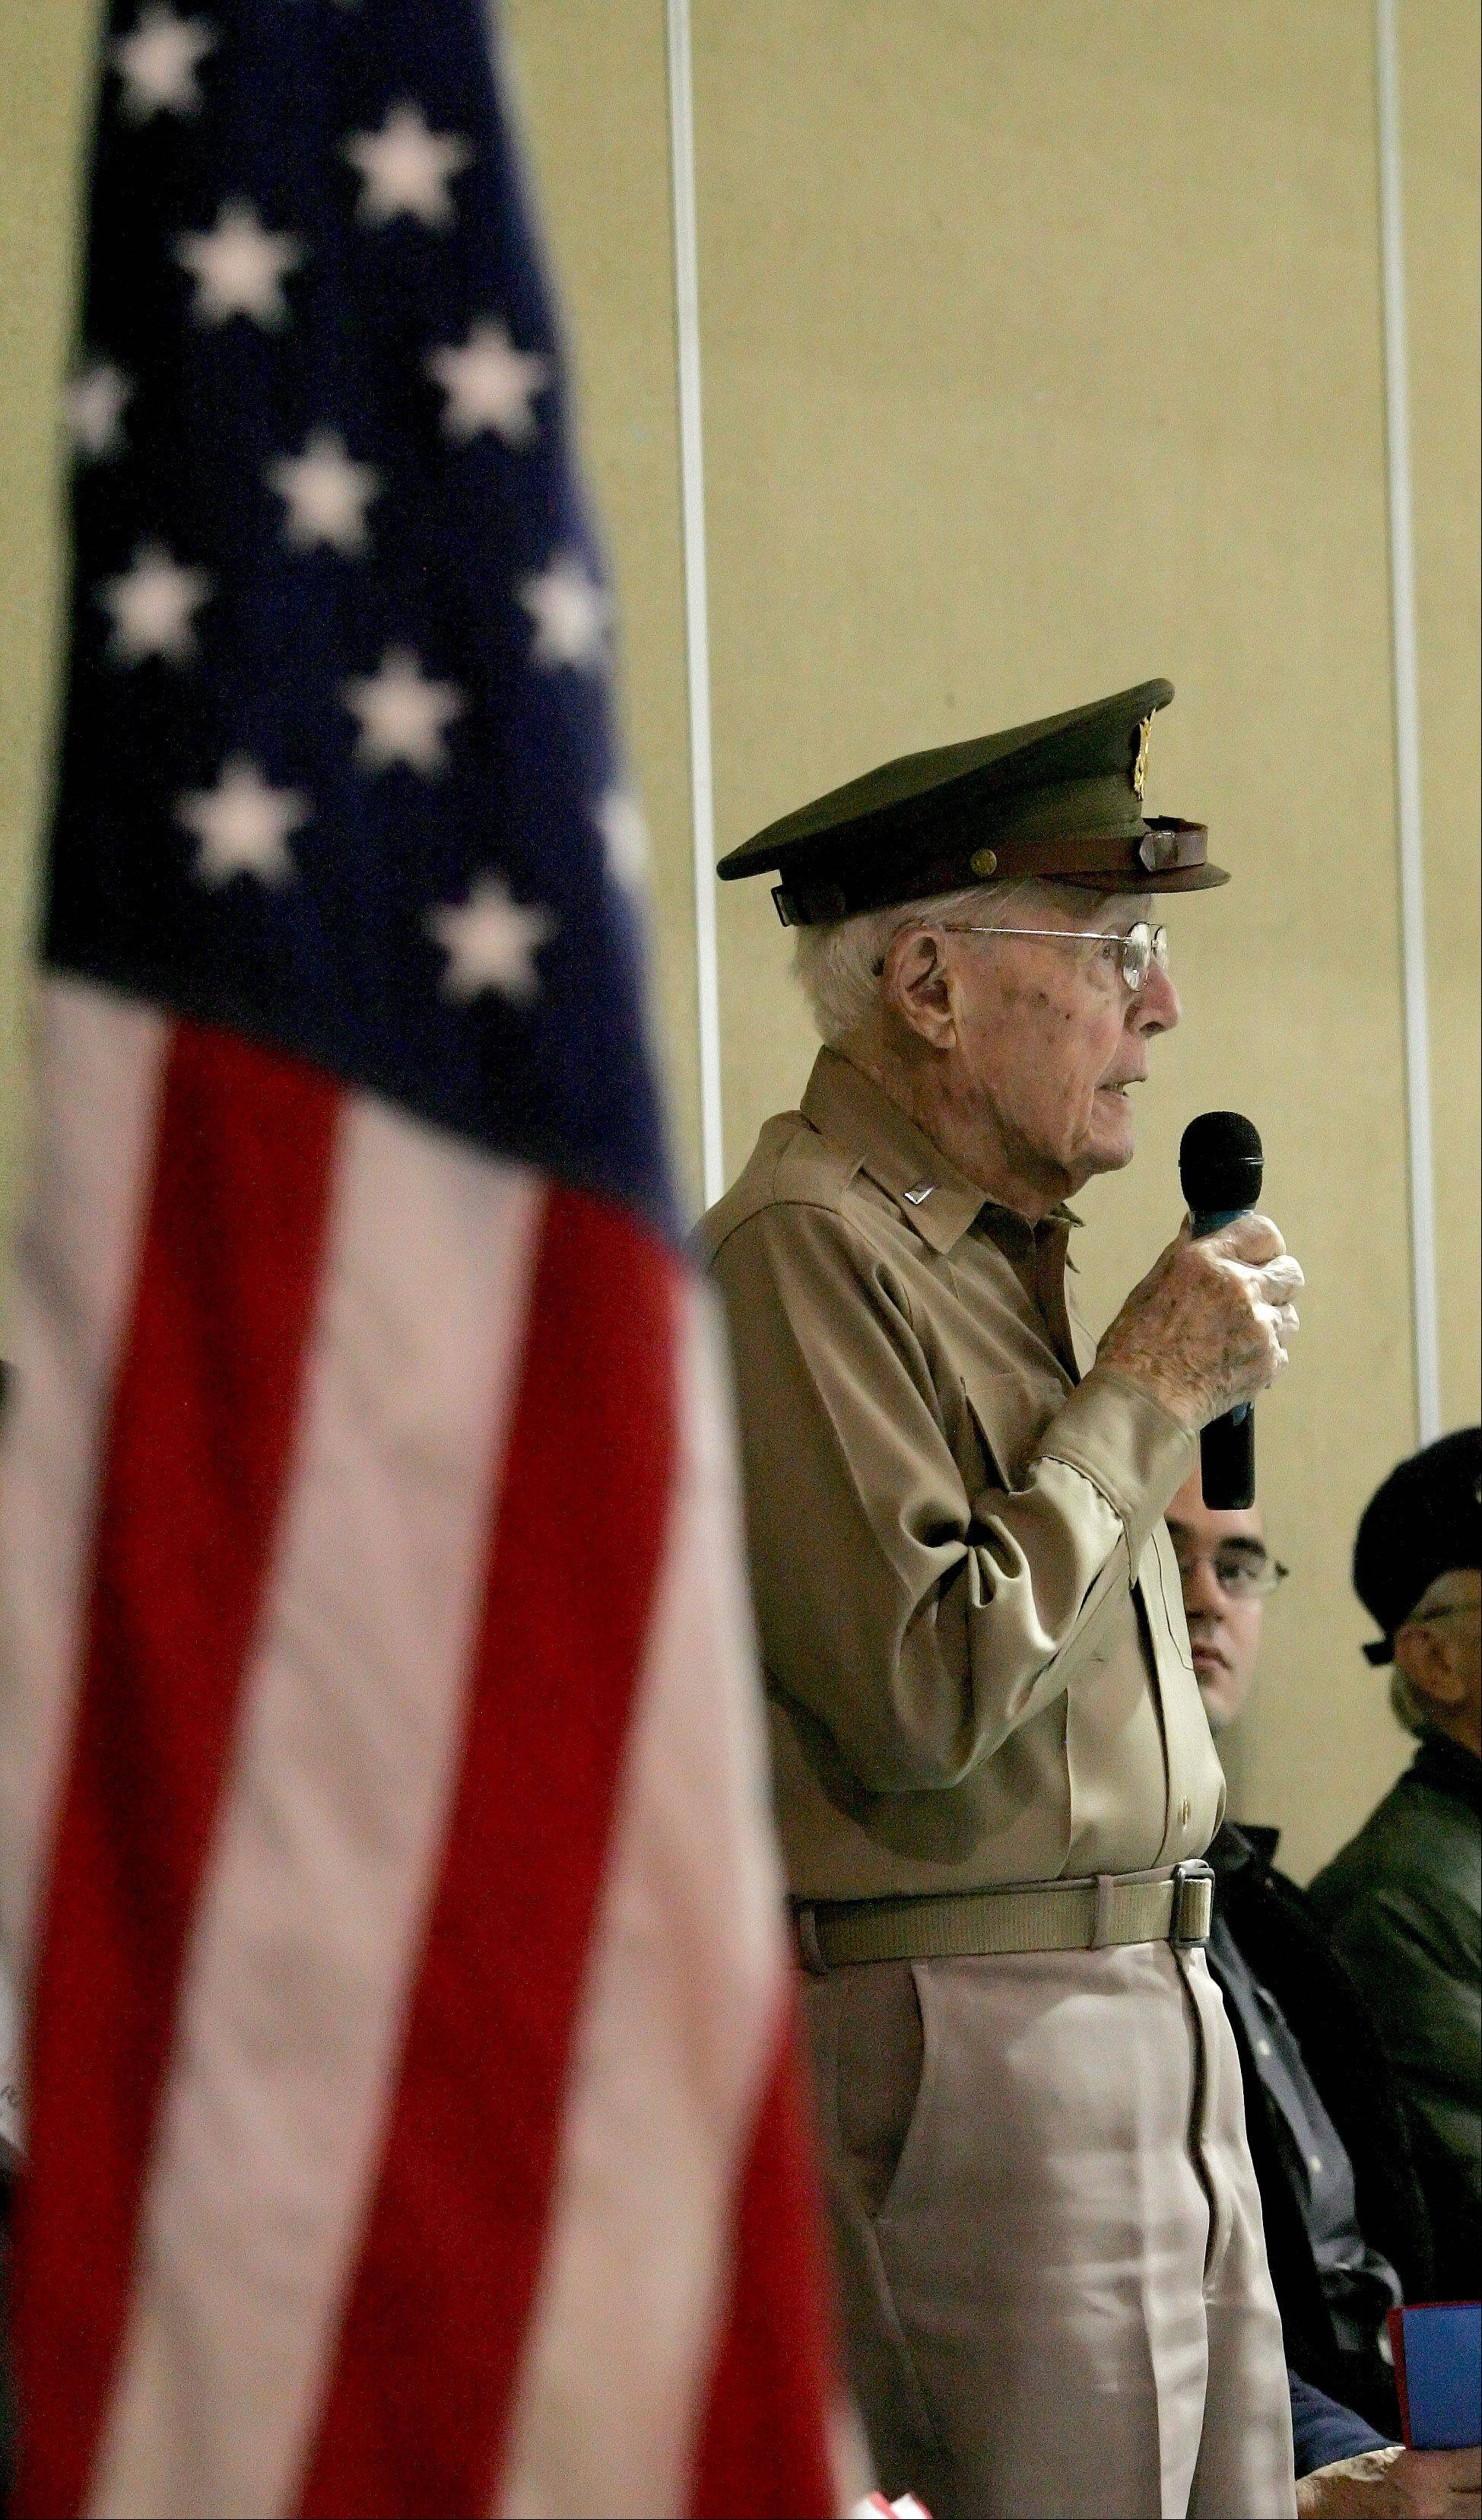 World War II veteran George Kleinwachter of Warrenville introduces himself during a Veterans Day program at Johnson Elementary School in Warrenville.